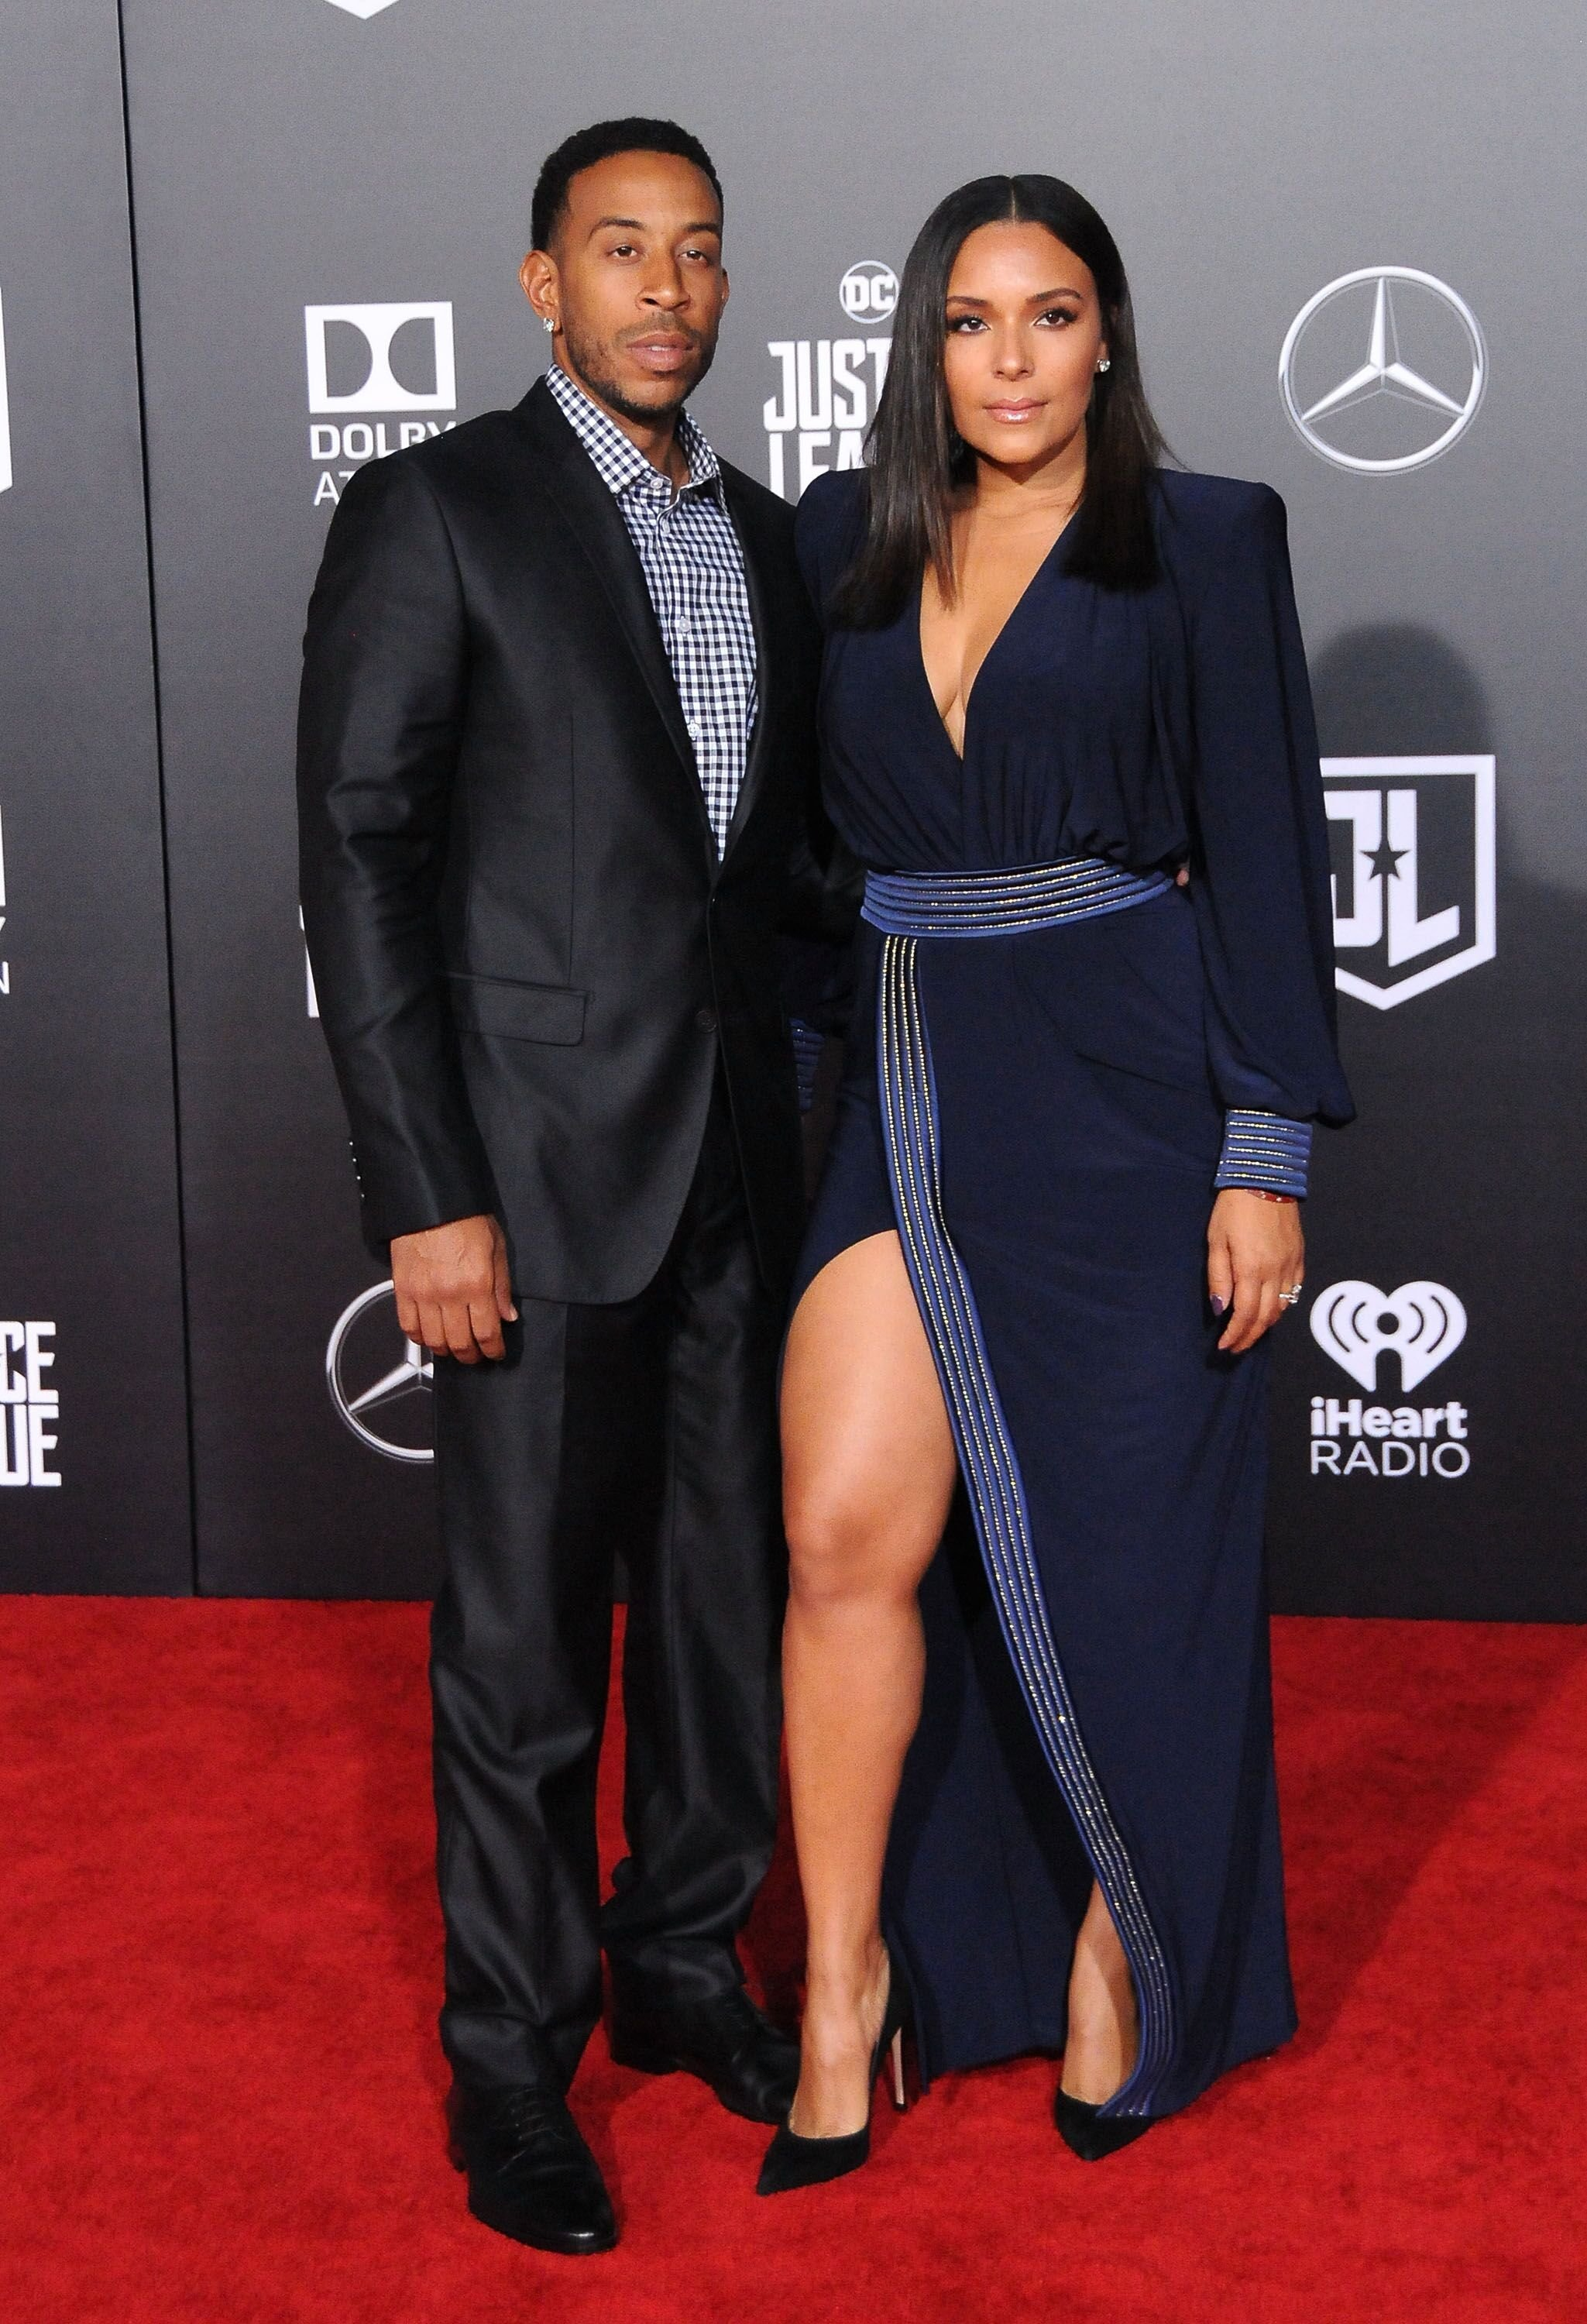 Rapper Ludacris and Eudoxie Mbouguiengue attend the premiere of Warner Bros. Pictures' 'Justice League' at Dolby Theatre on November 13, 2017 | Photo: Getty Images